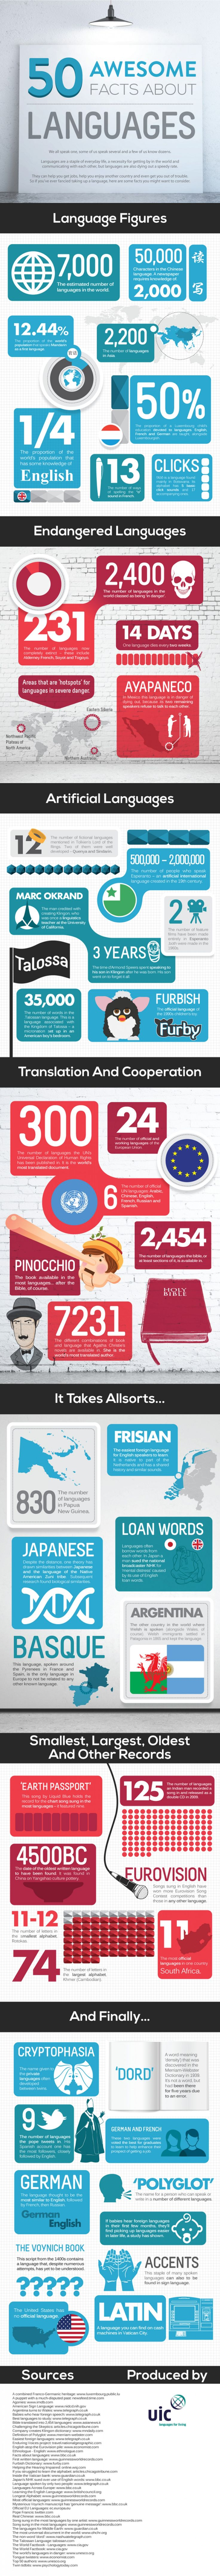 50 awesome facts about #languages. Re-pinned by #Europass